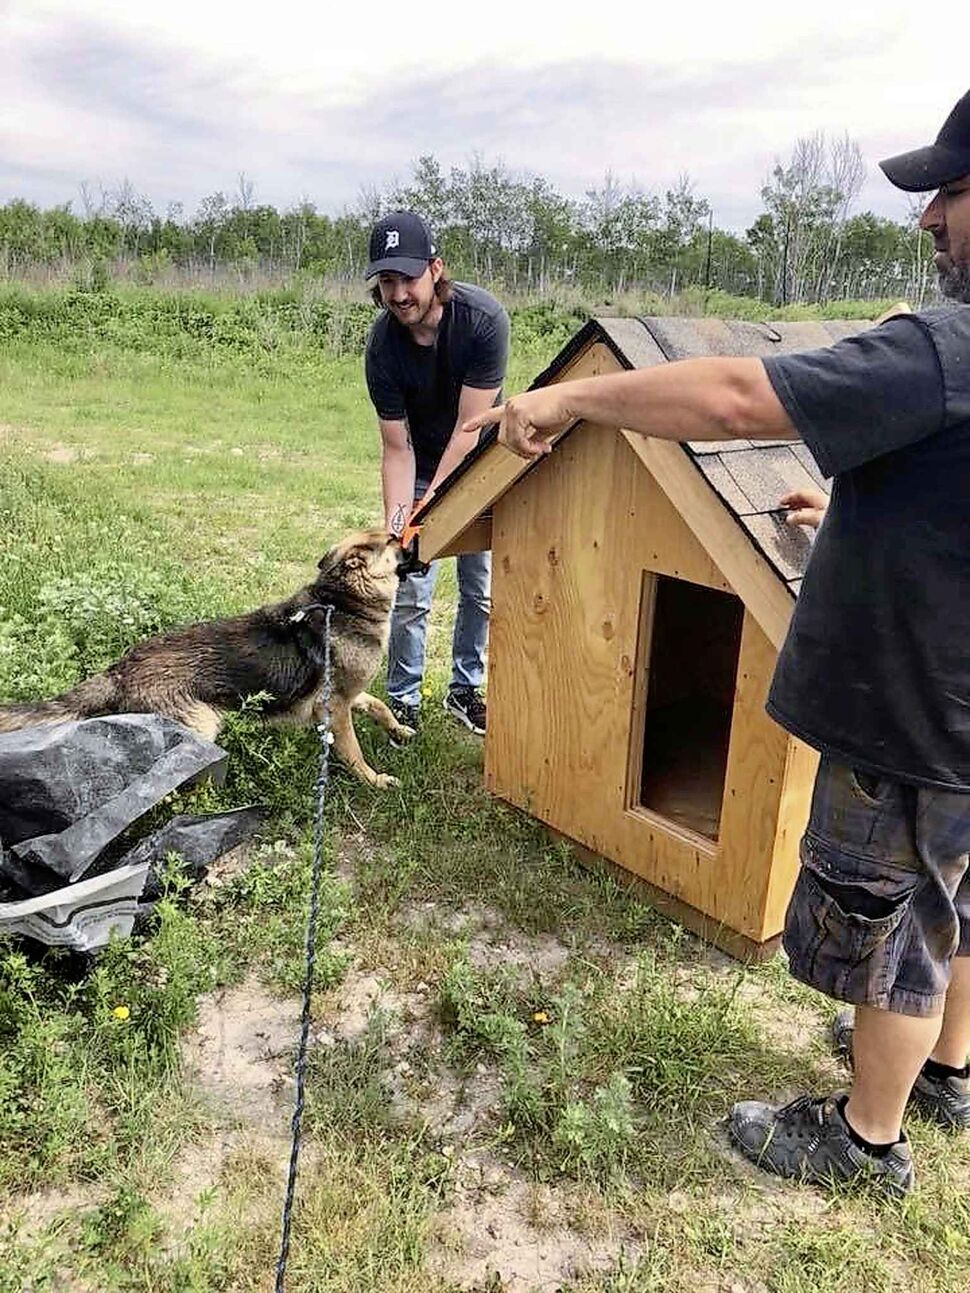 Zach Munn, left, introduces a dog at Ebb & Flow First Nation to its doghouse, while Mike Brambilla helps out.